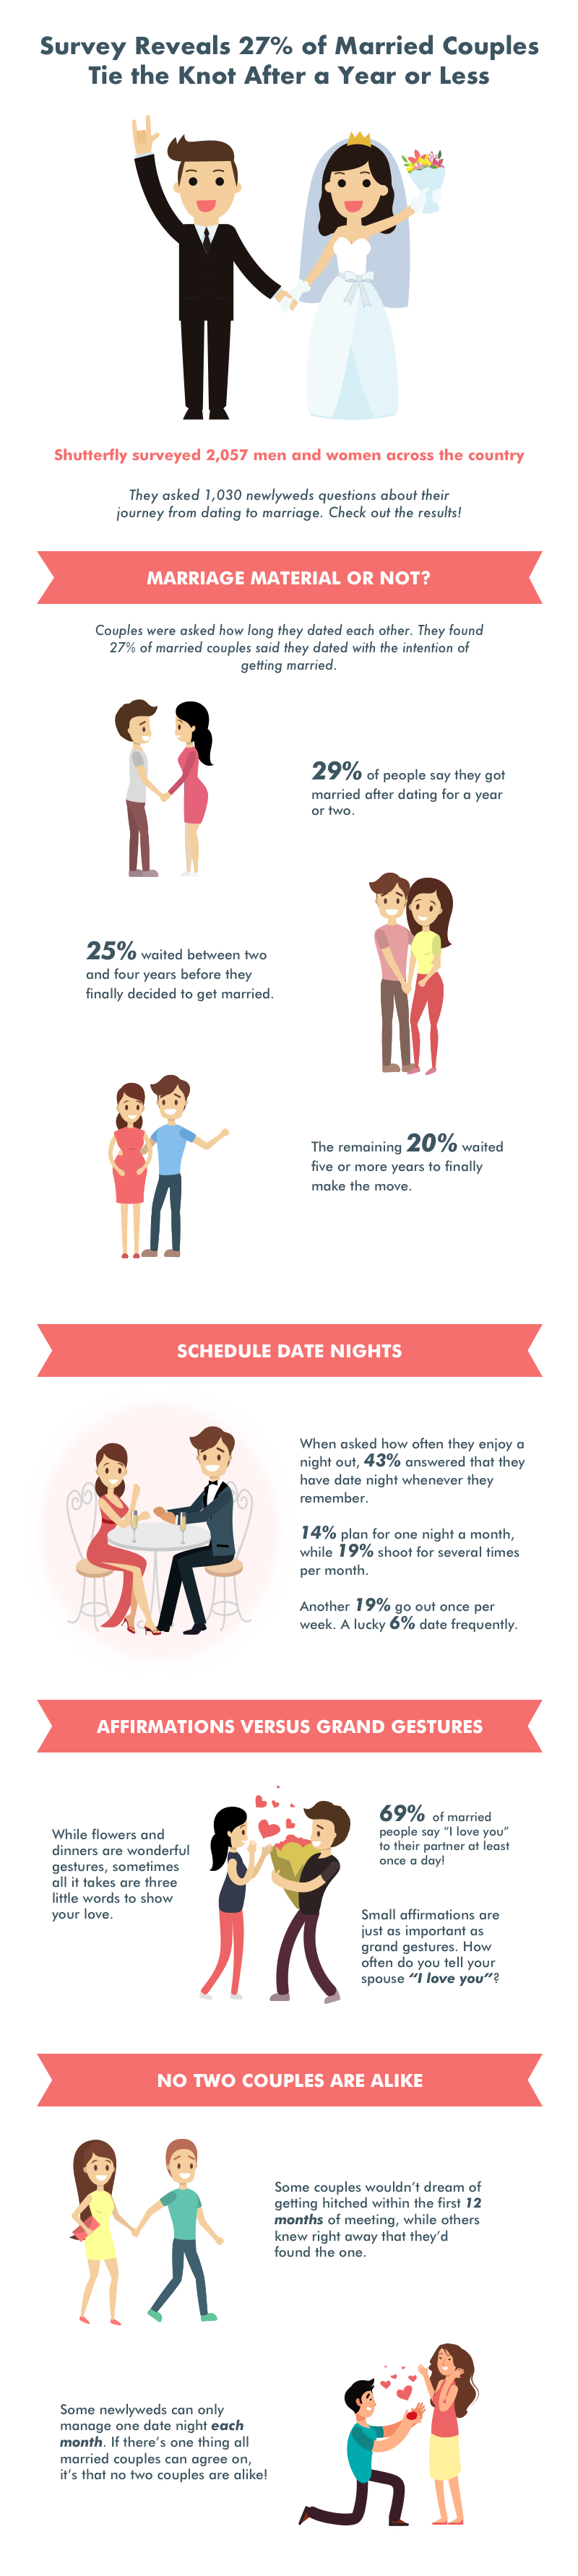 quizzes for married couples